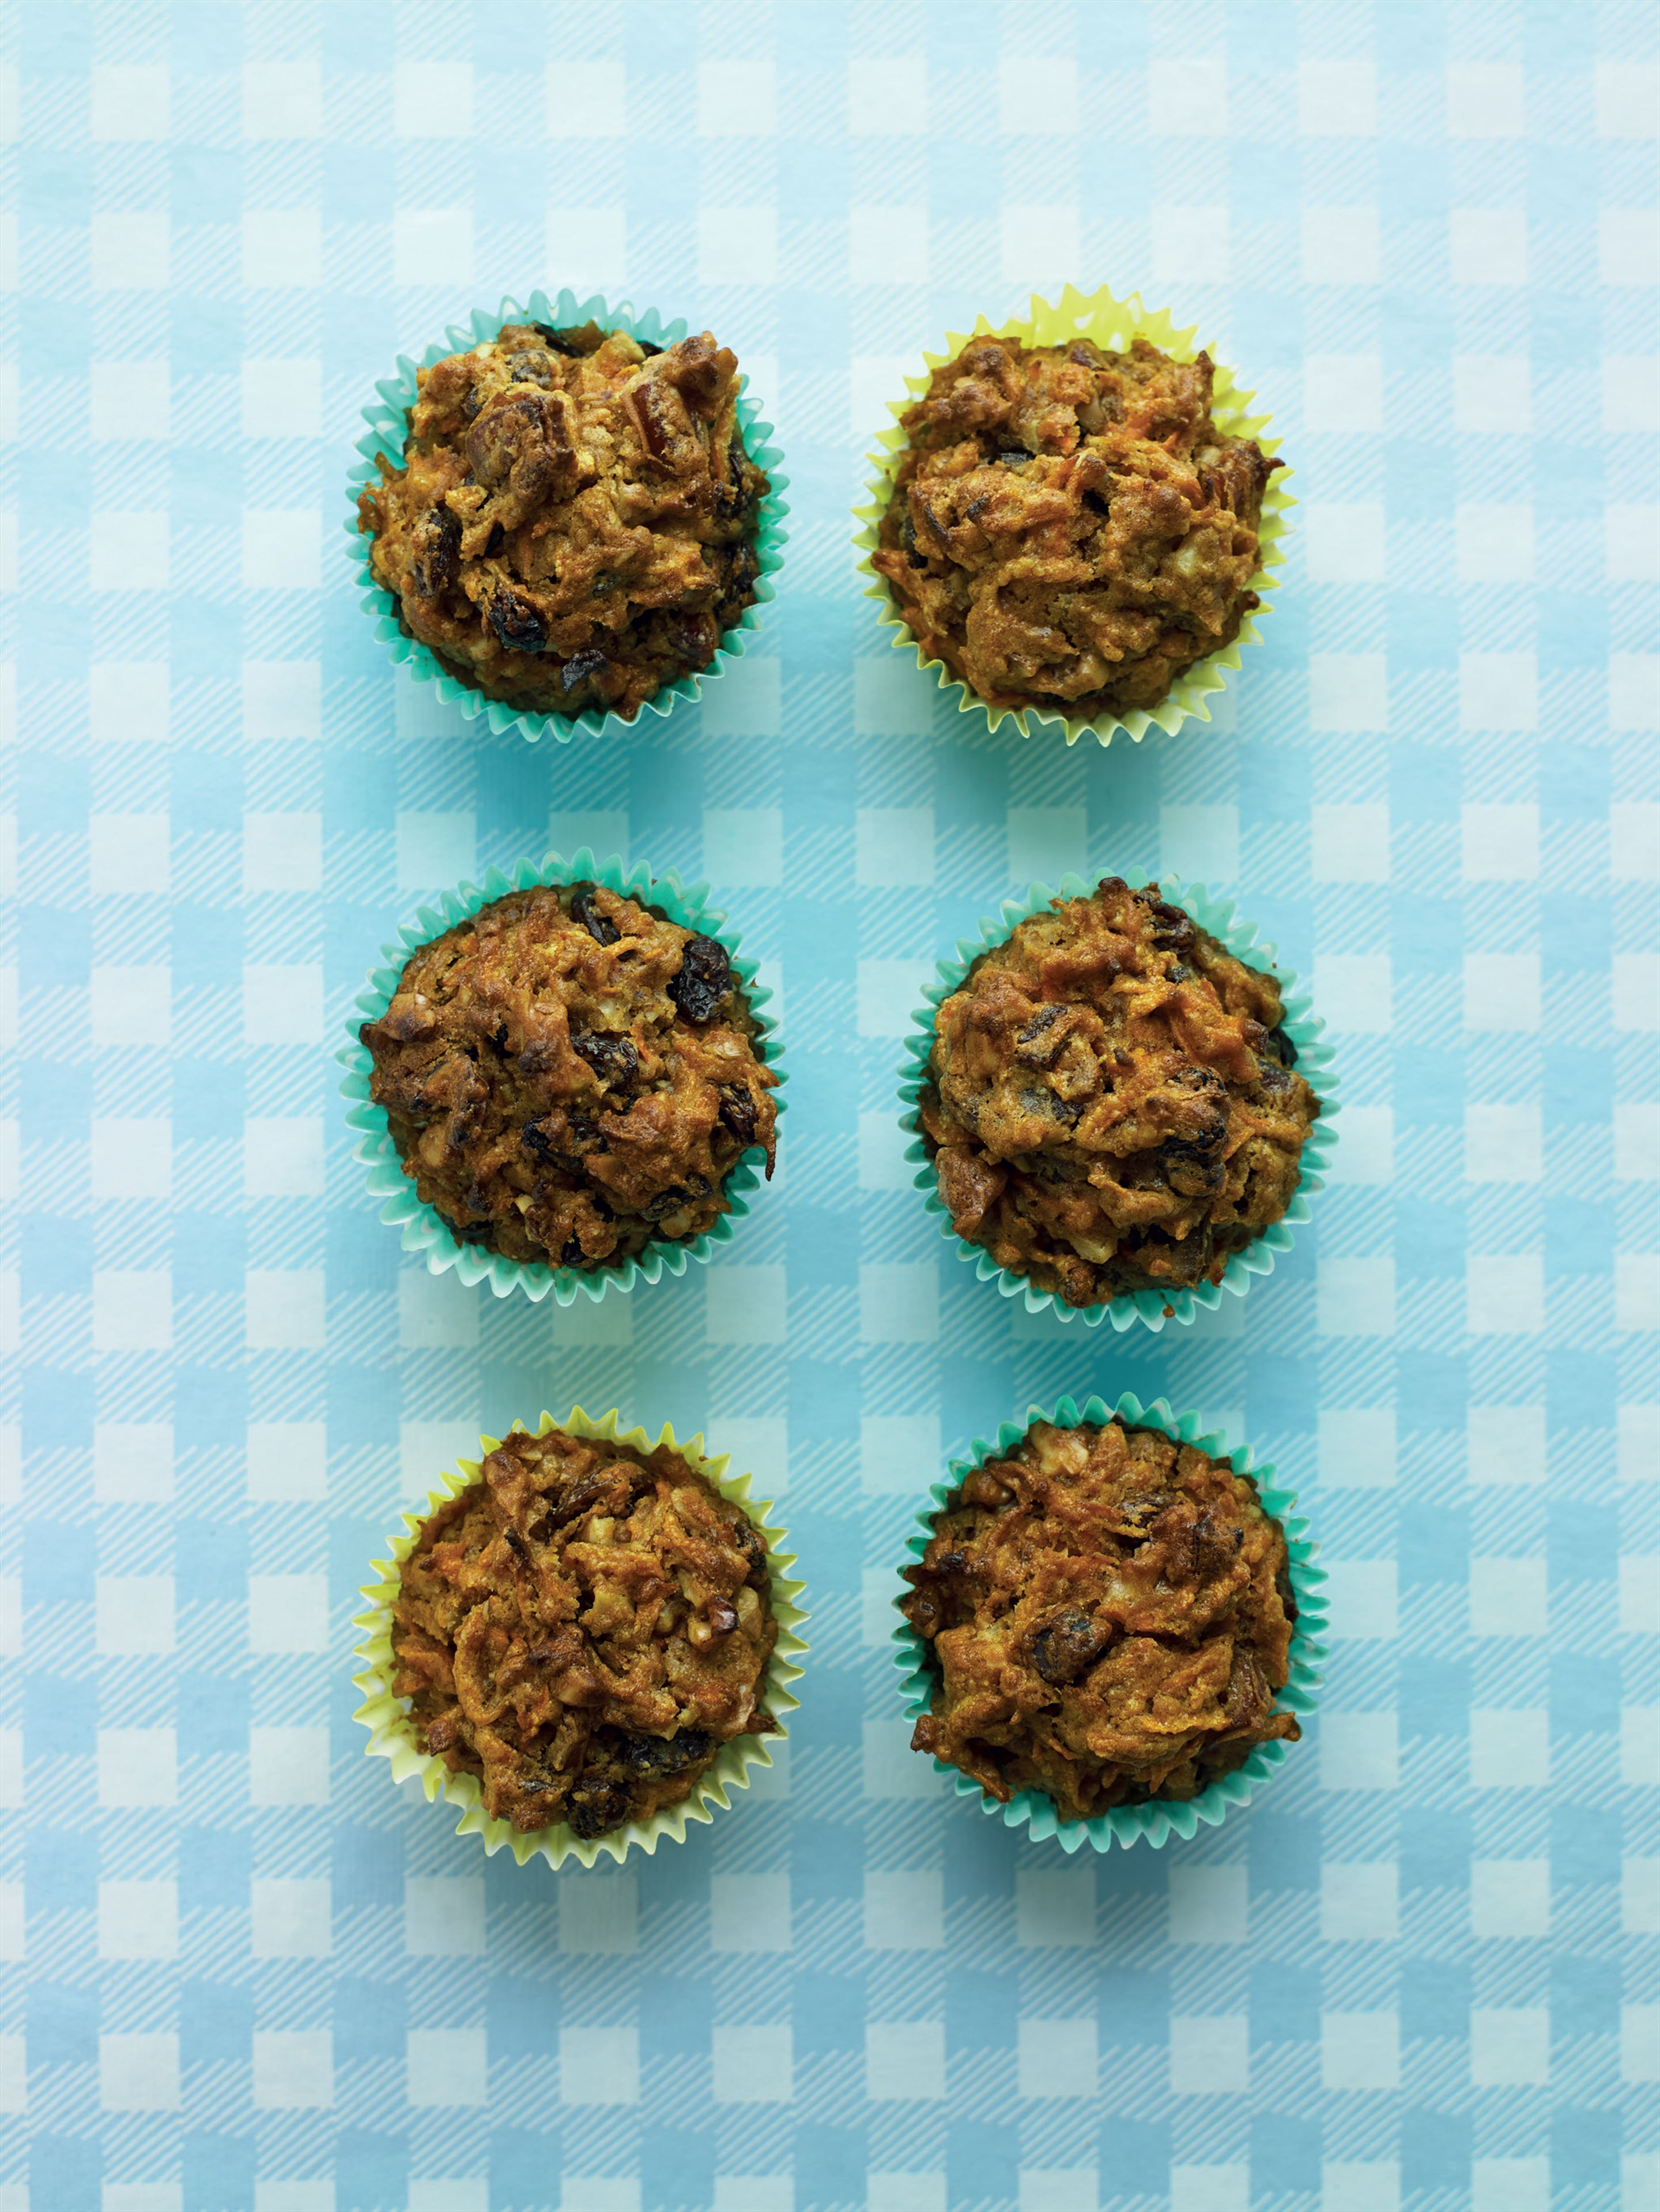 Spiced carrot and date muffins